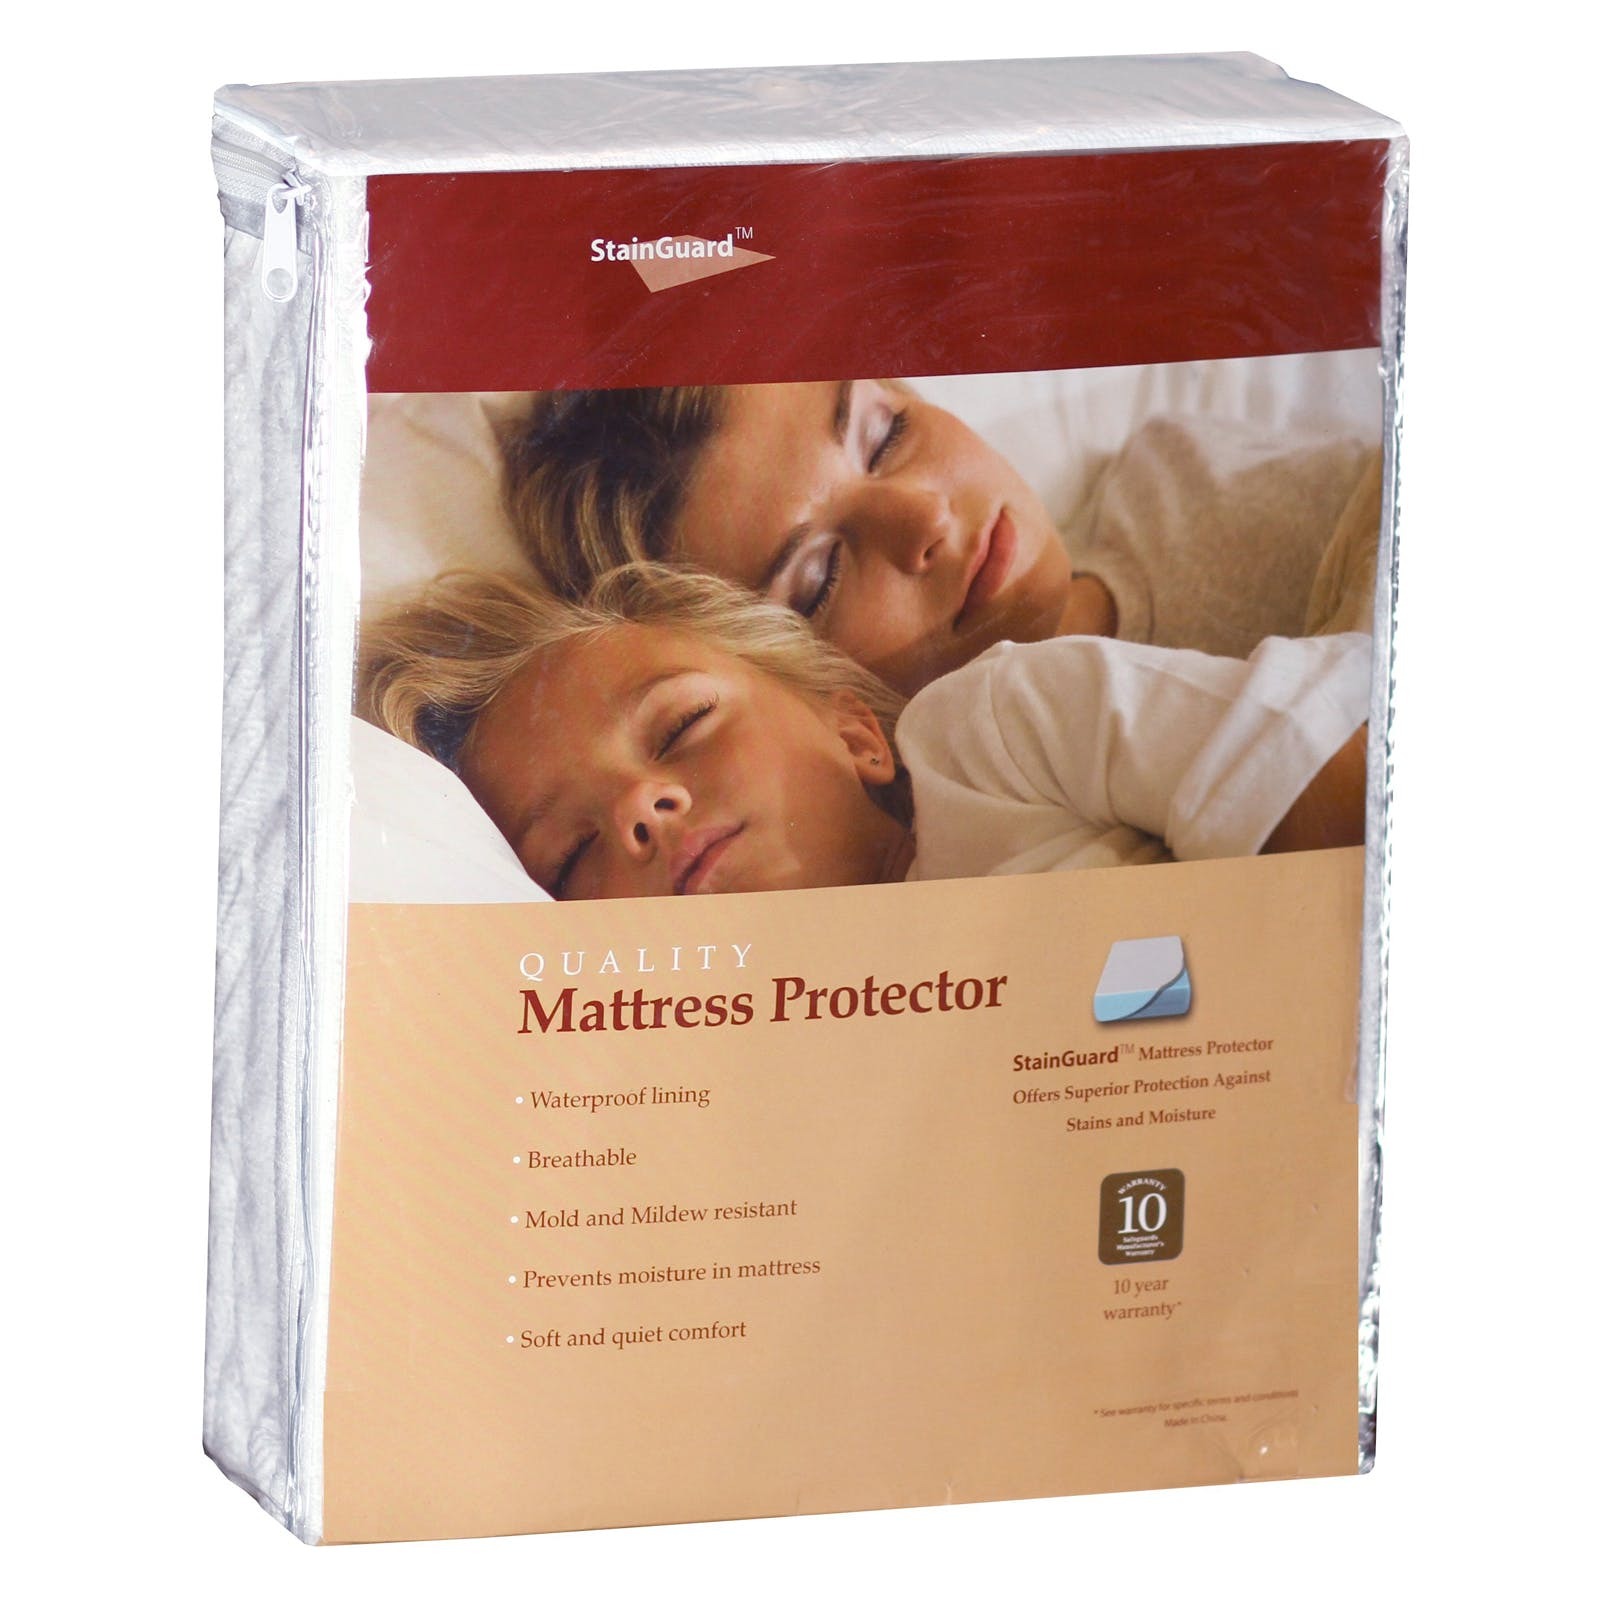 StainGuard Terry Mattress Protector